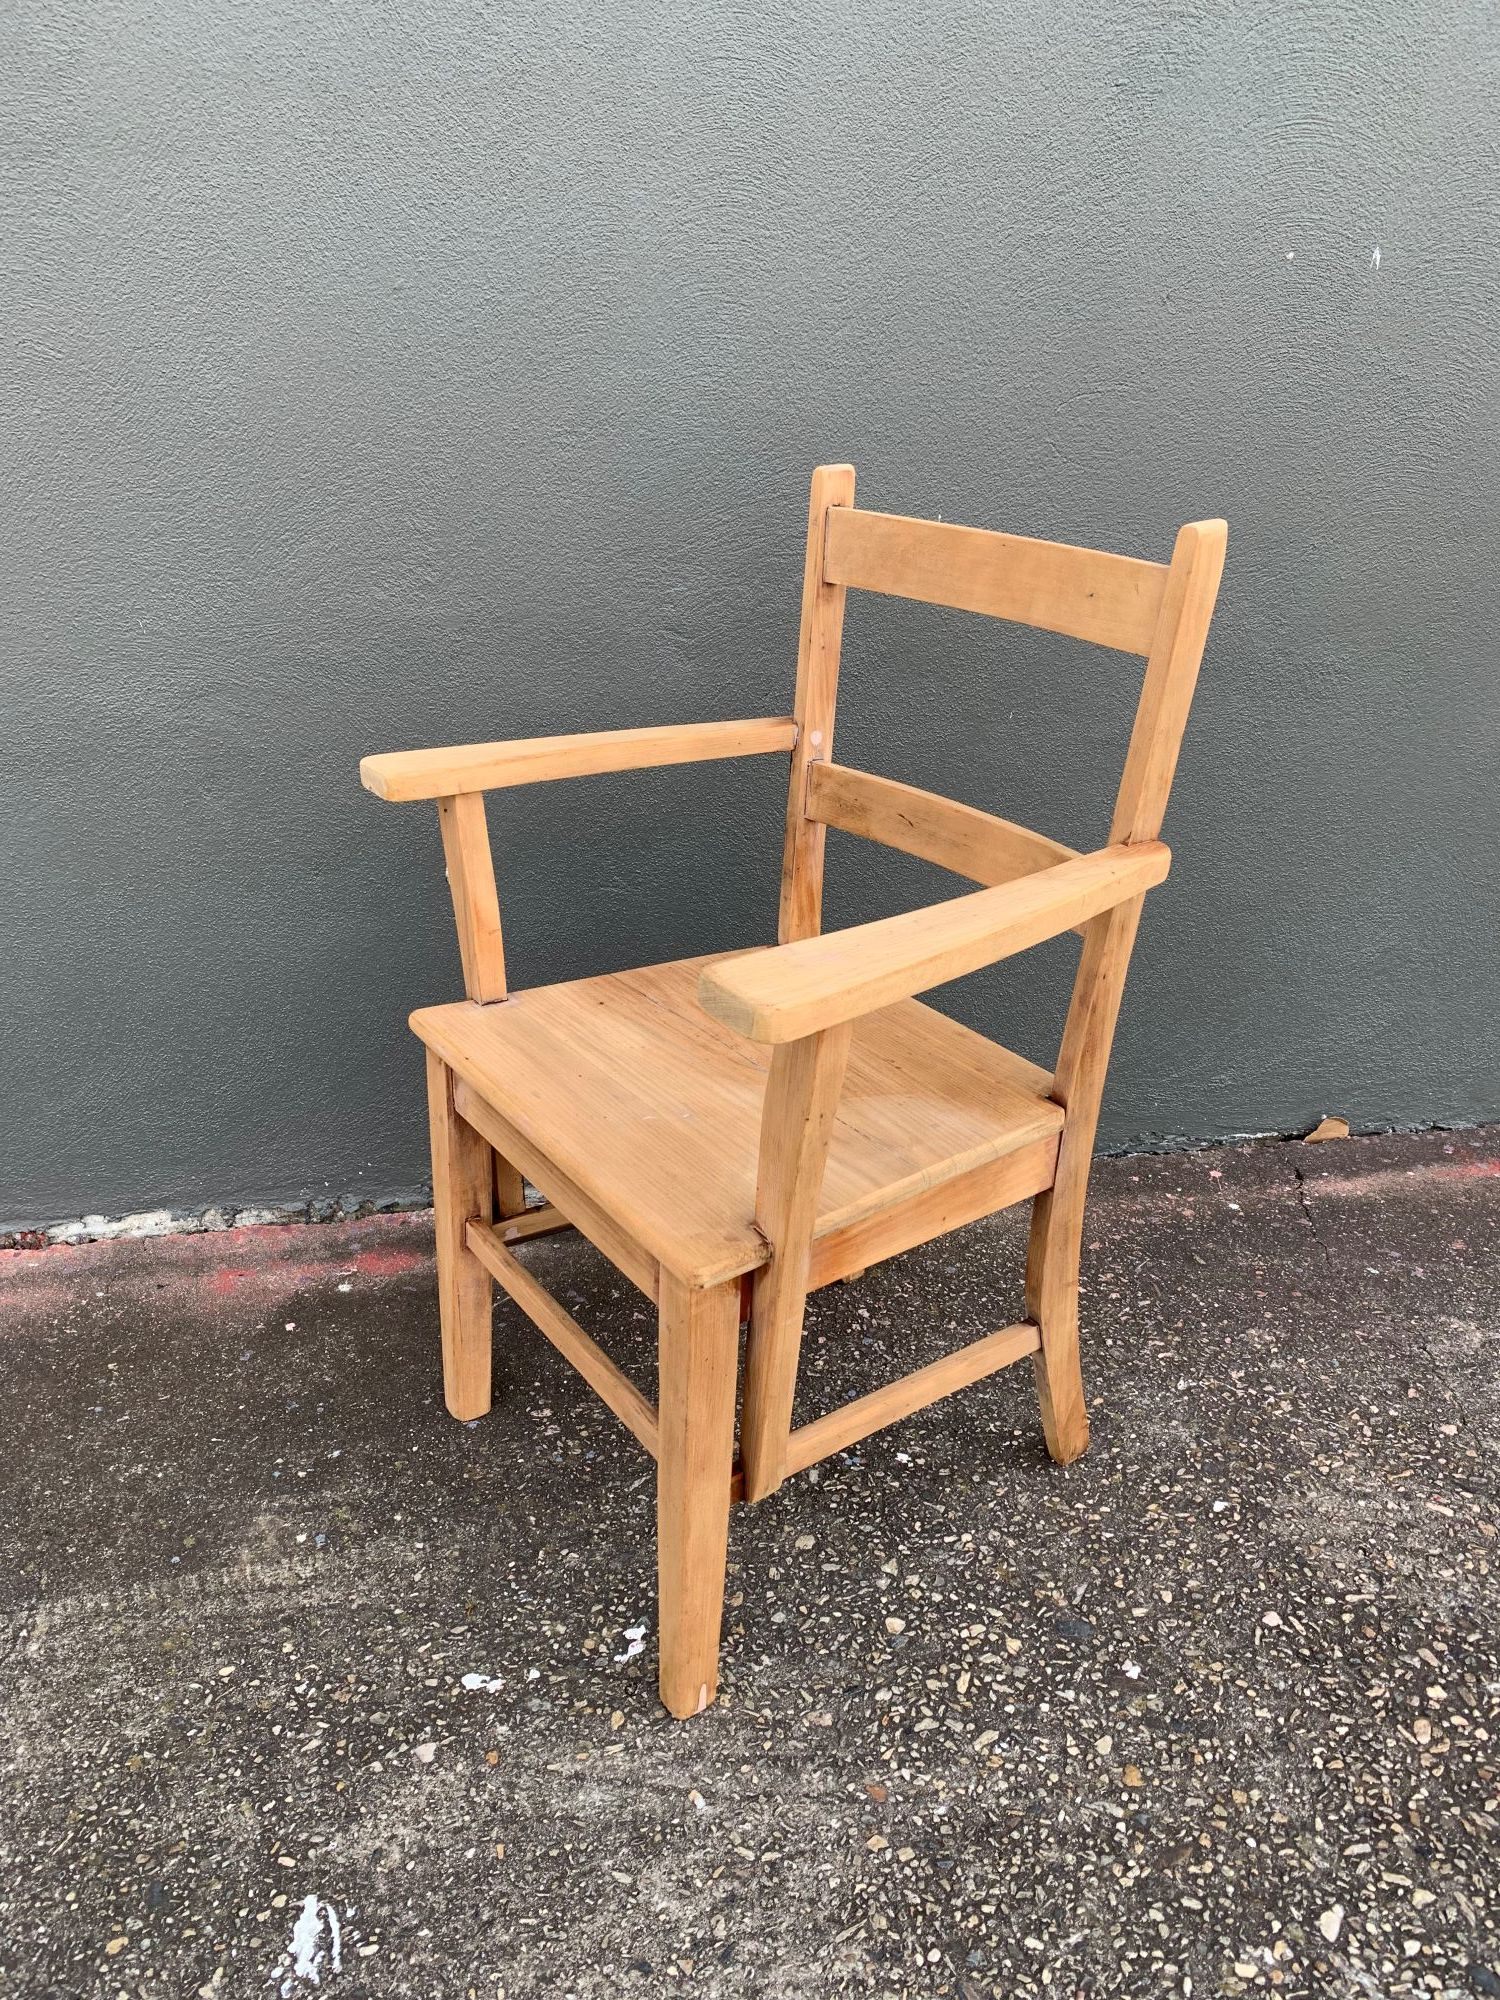 chair before restoration bywater design.jpg